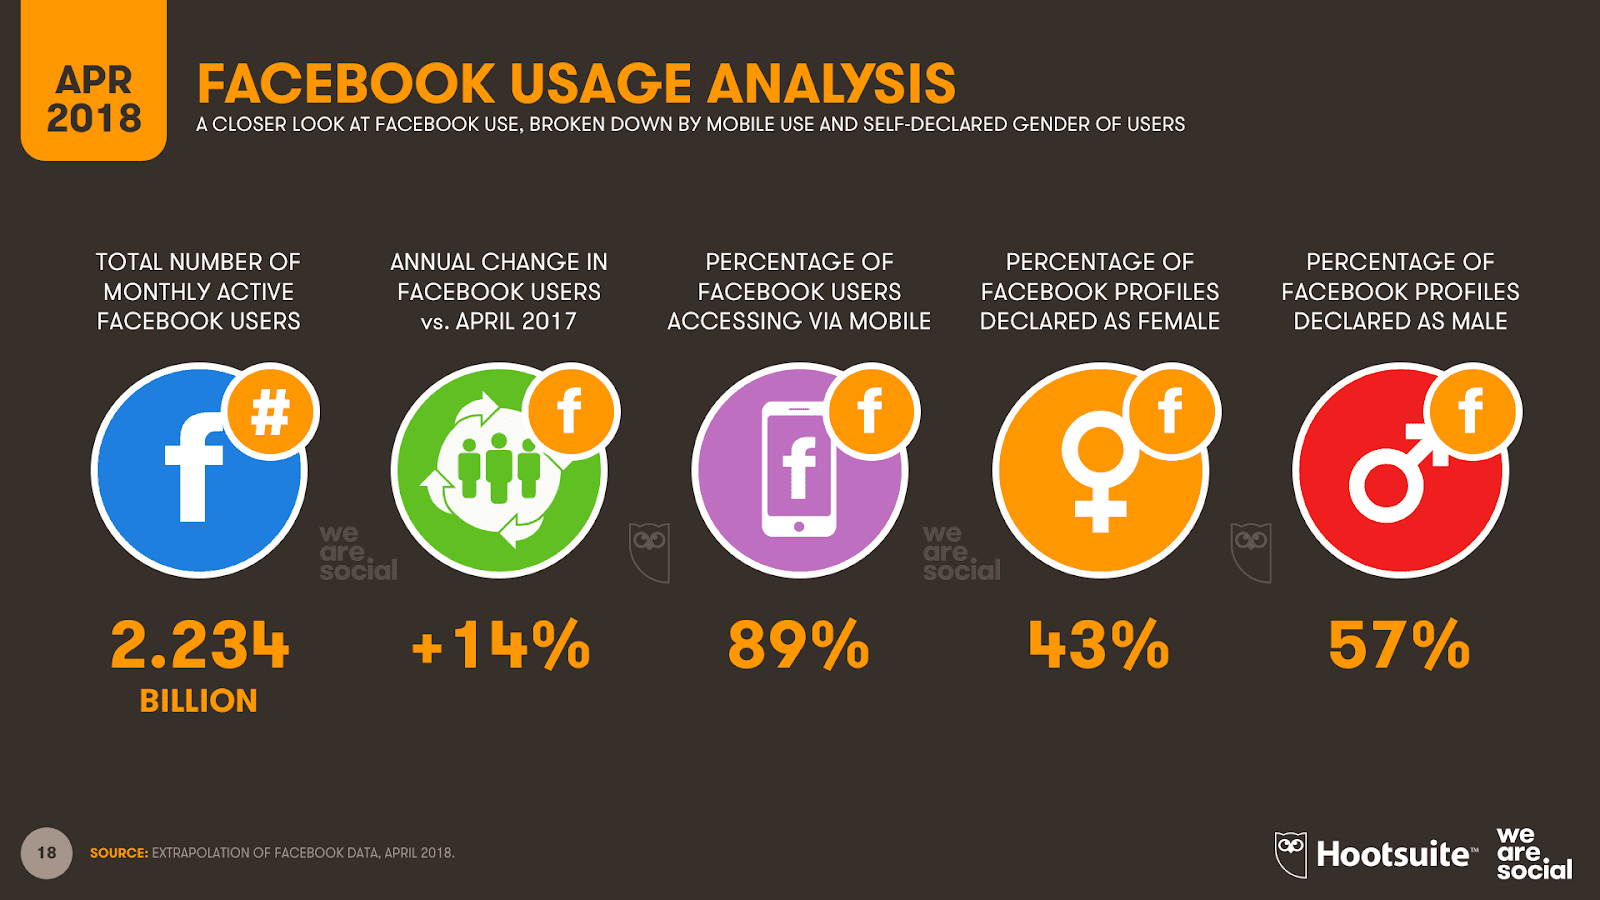 This infographic takes a closer look at the Facebook usages, broken down by mobile use and self-declared gender of users.